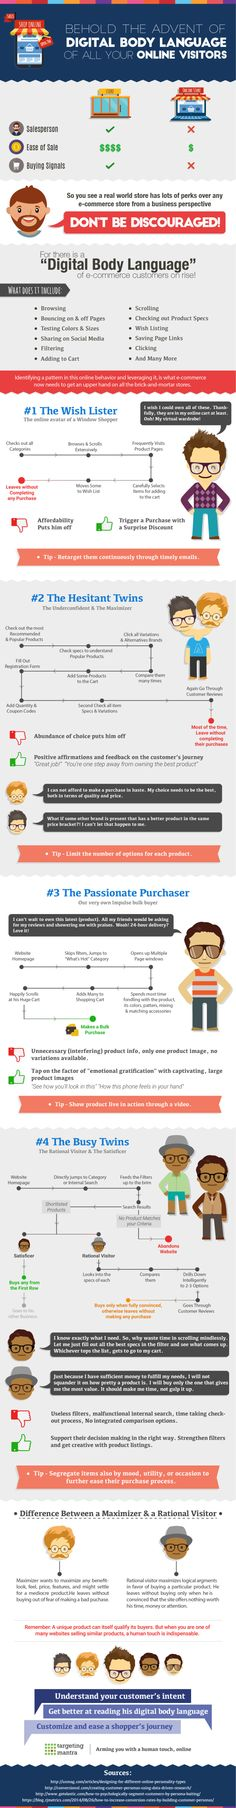 The Advent of Digital Body Language [INFOGRAPHIC]